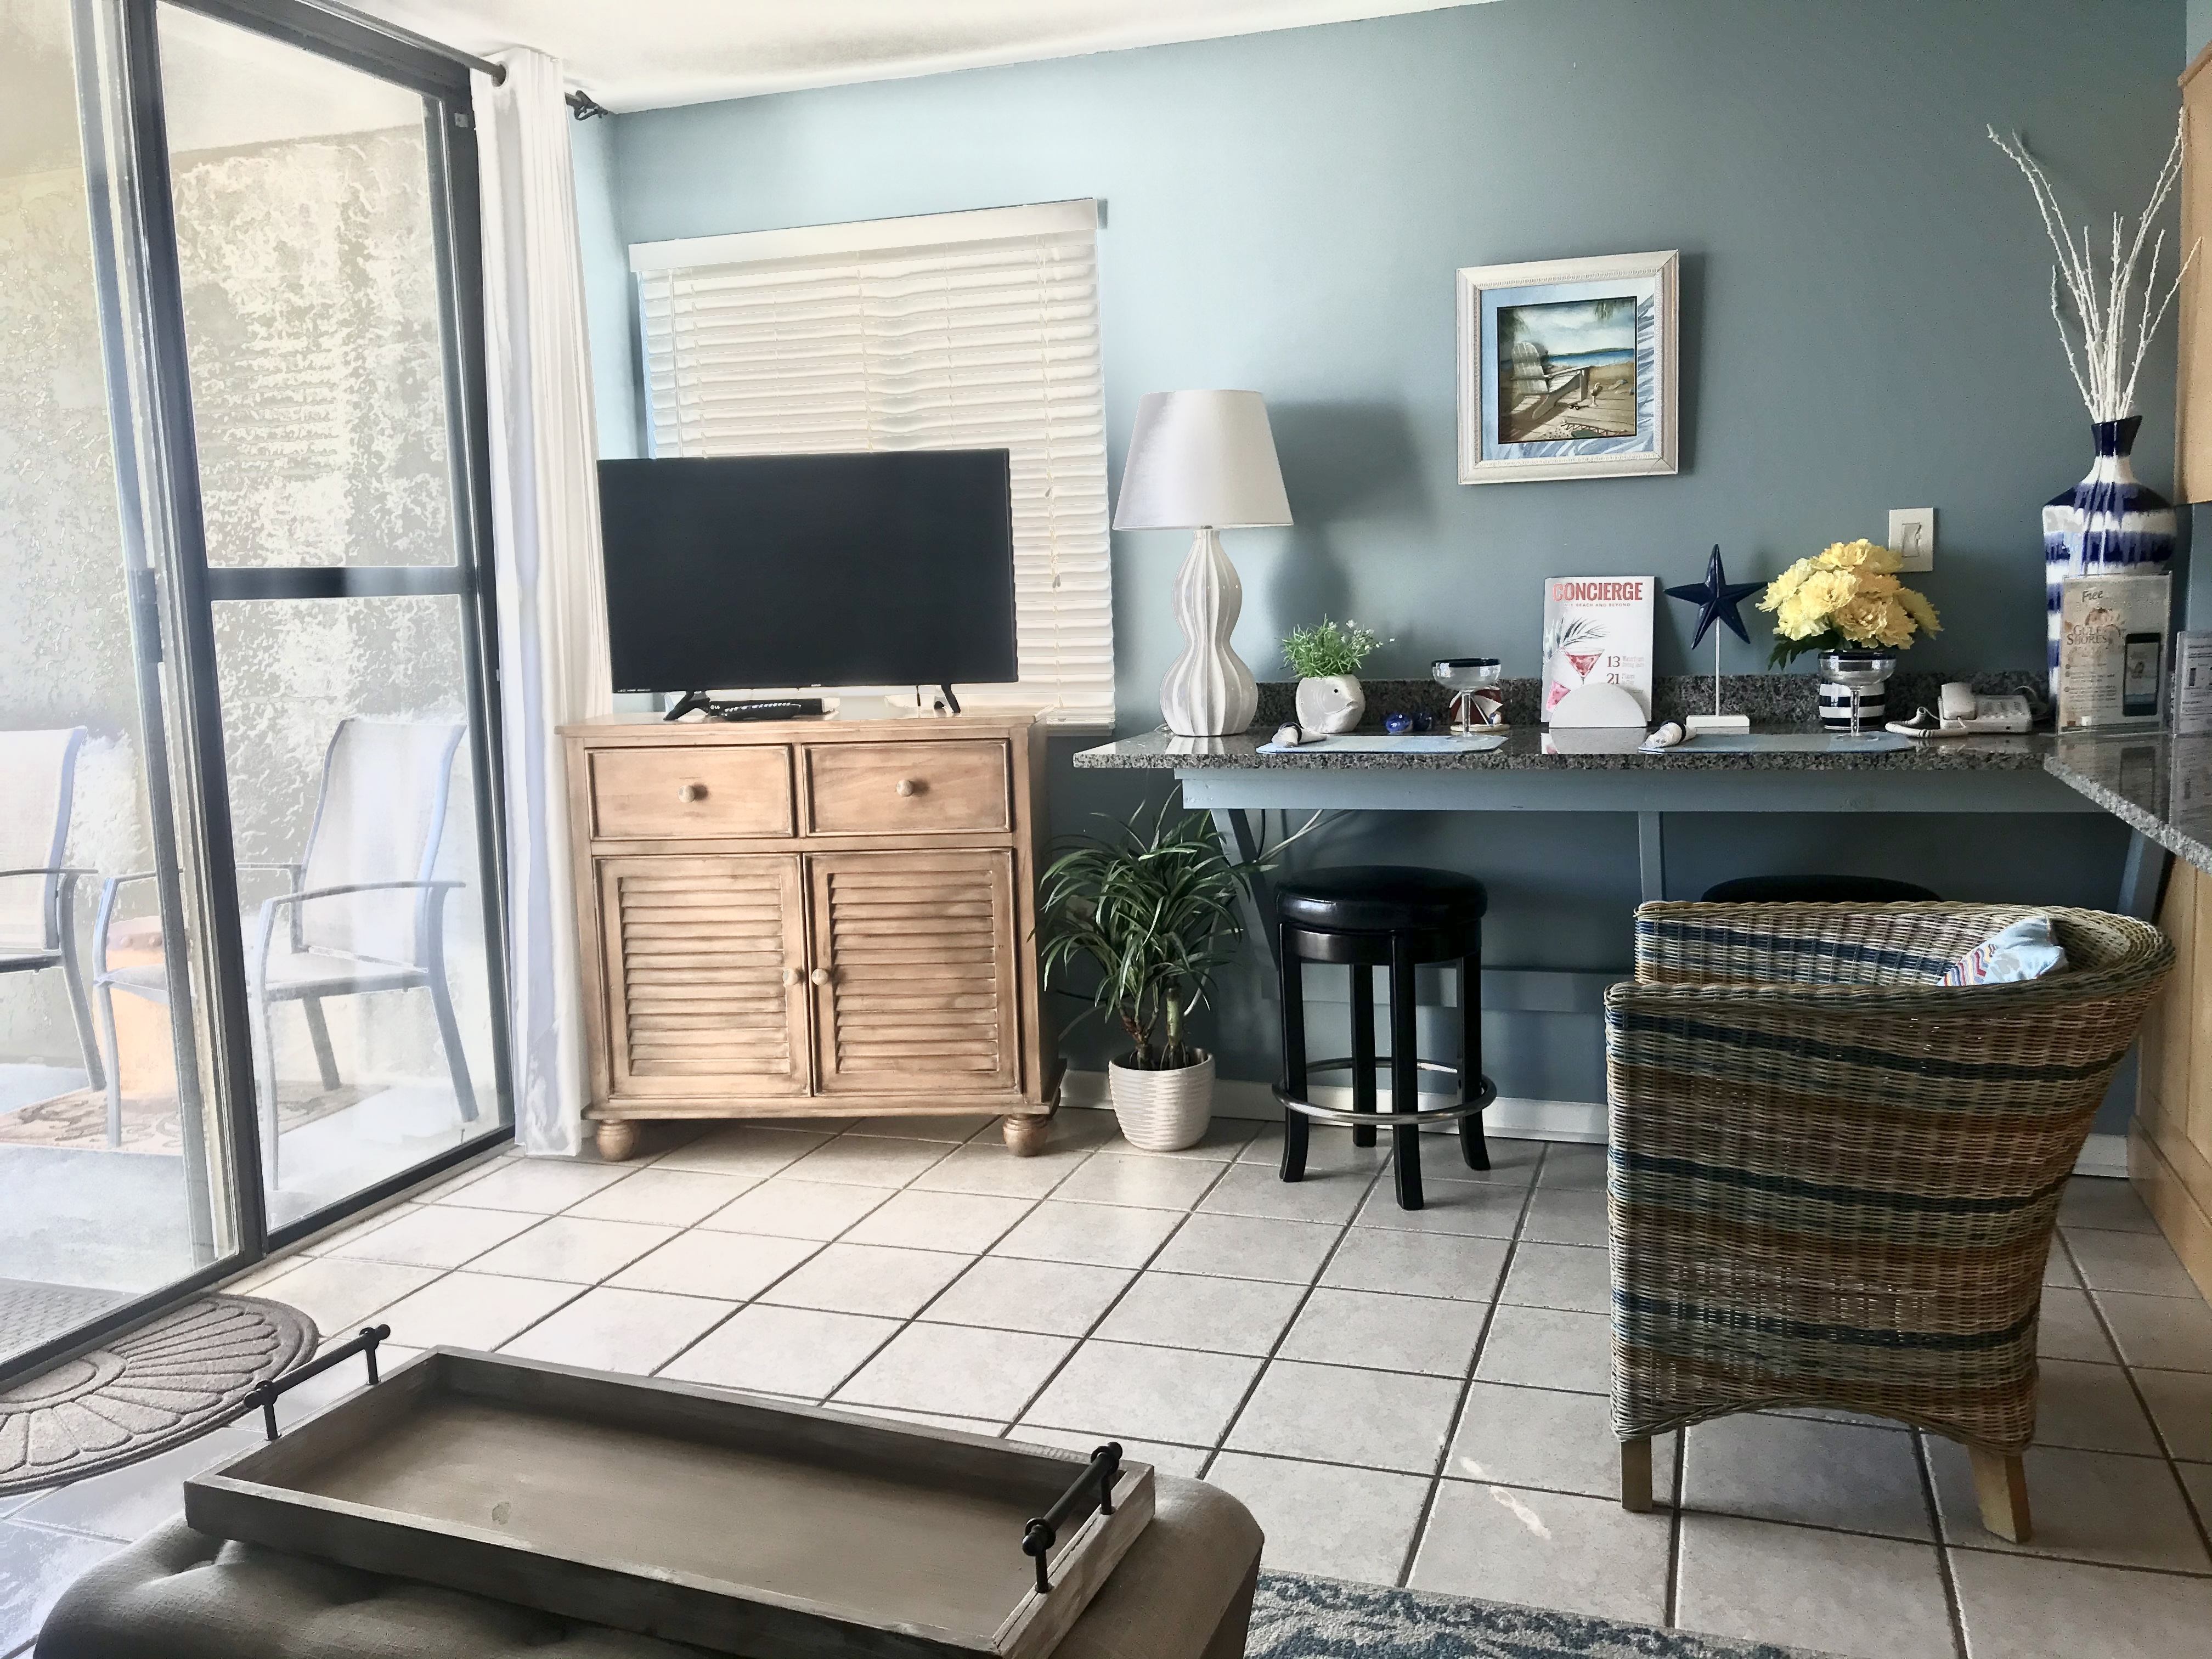 GS Surf & Racquet 301A Condo rental in Gulf Shores Surf and Racquet Club in Gulf Shores Alabama - #8